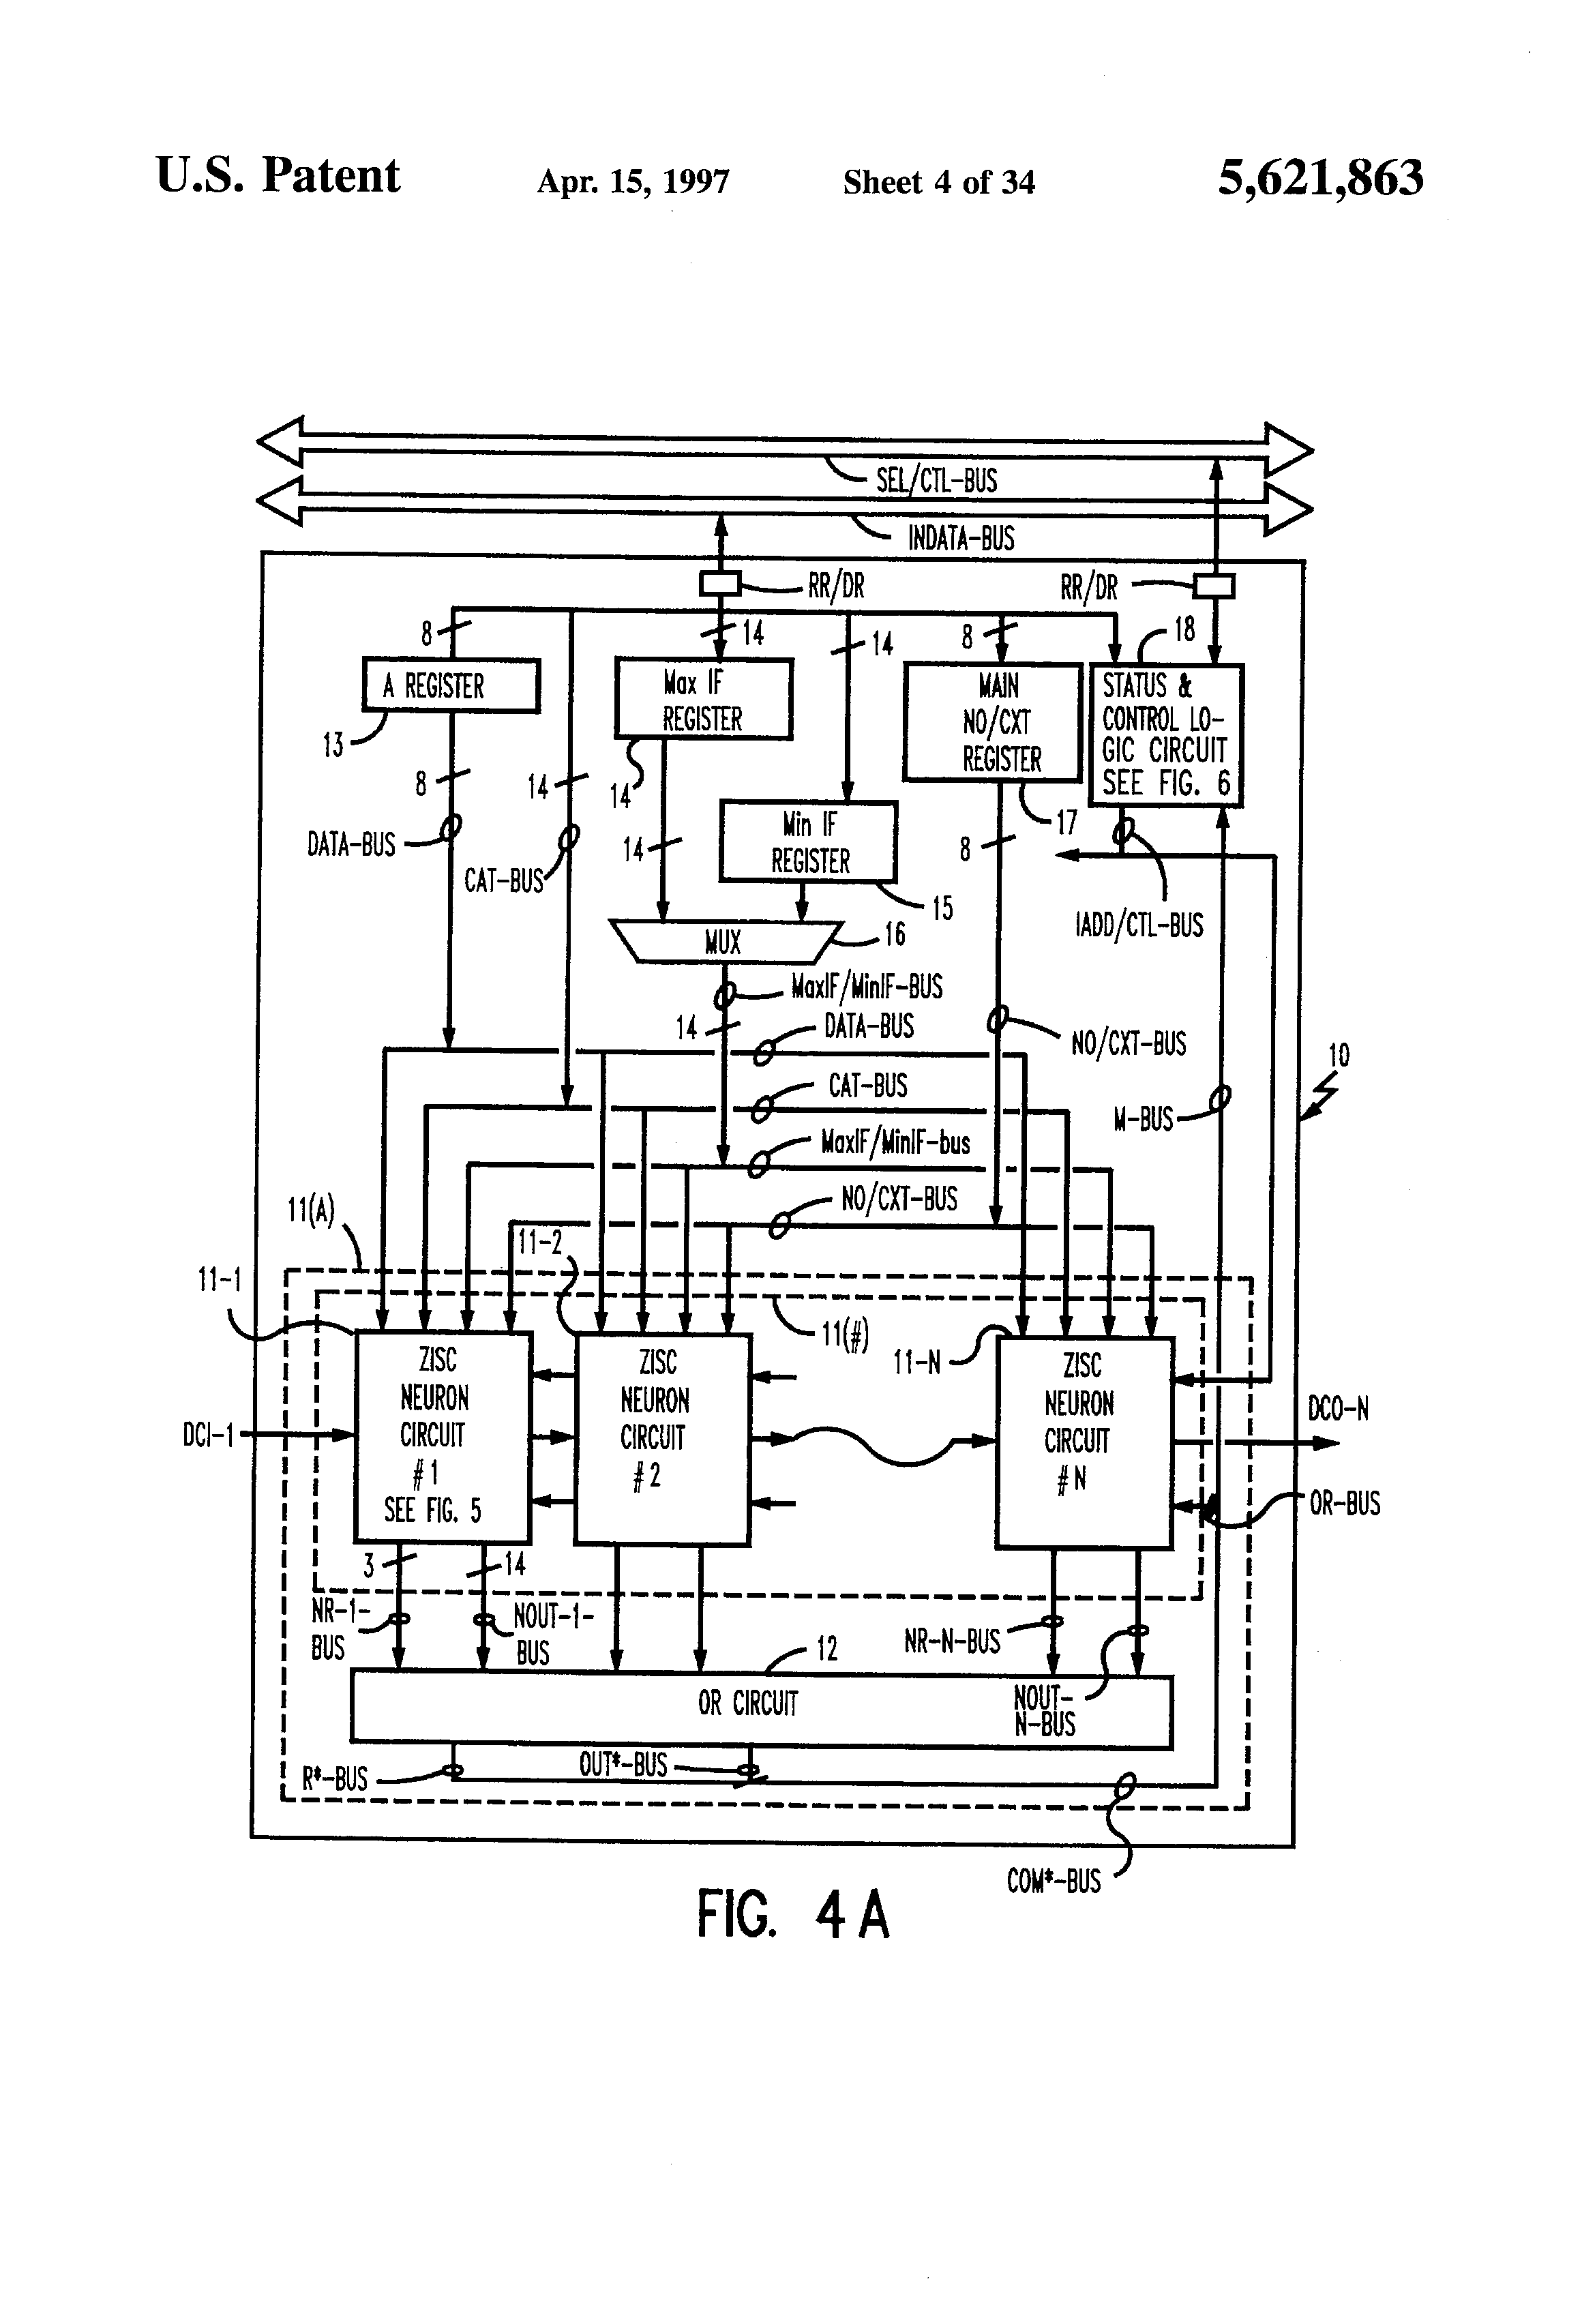 14 Pin Shift Register Pinout Diagram furthermore Split Outlet Wiring Diagrams in addition Diagram For Wiring Daisy Chain also US5210530 furthermore Seriesparallel Pf. on daisy chain circuits